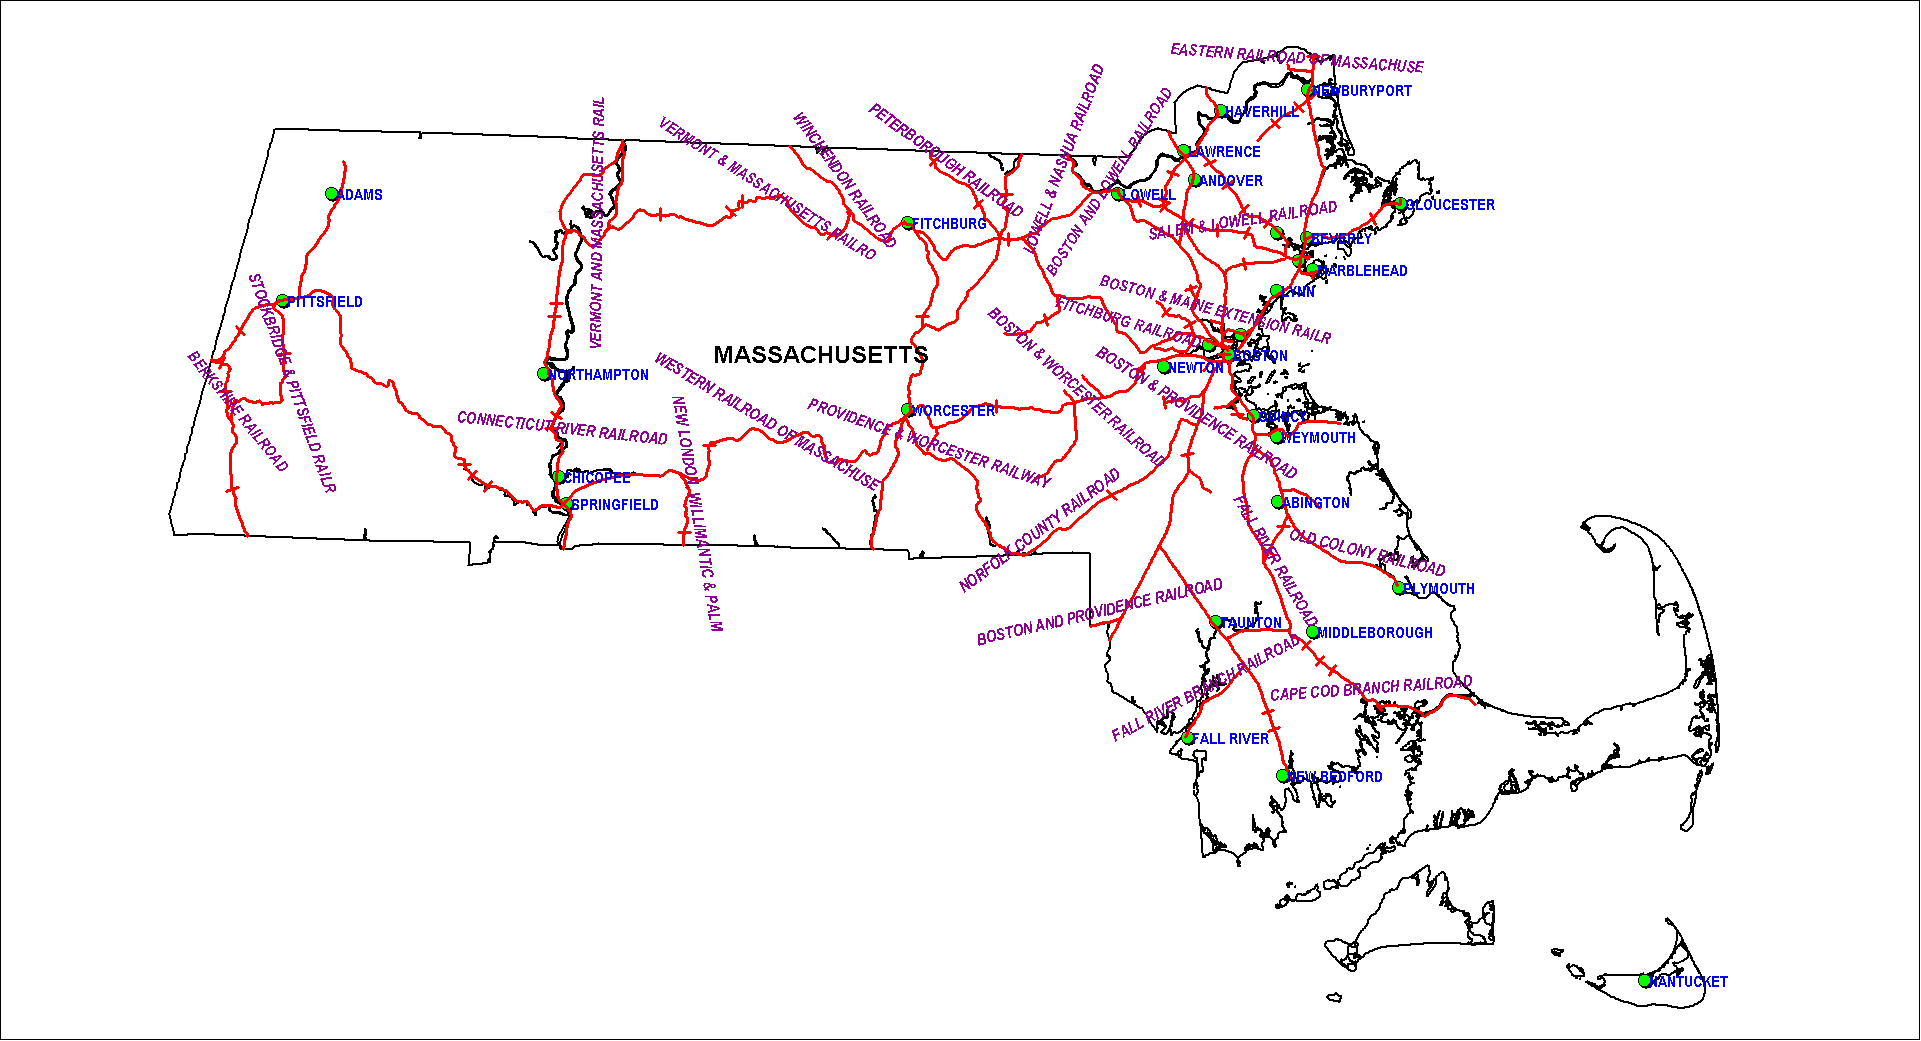 Massachusetta Railroads Map as of 1850